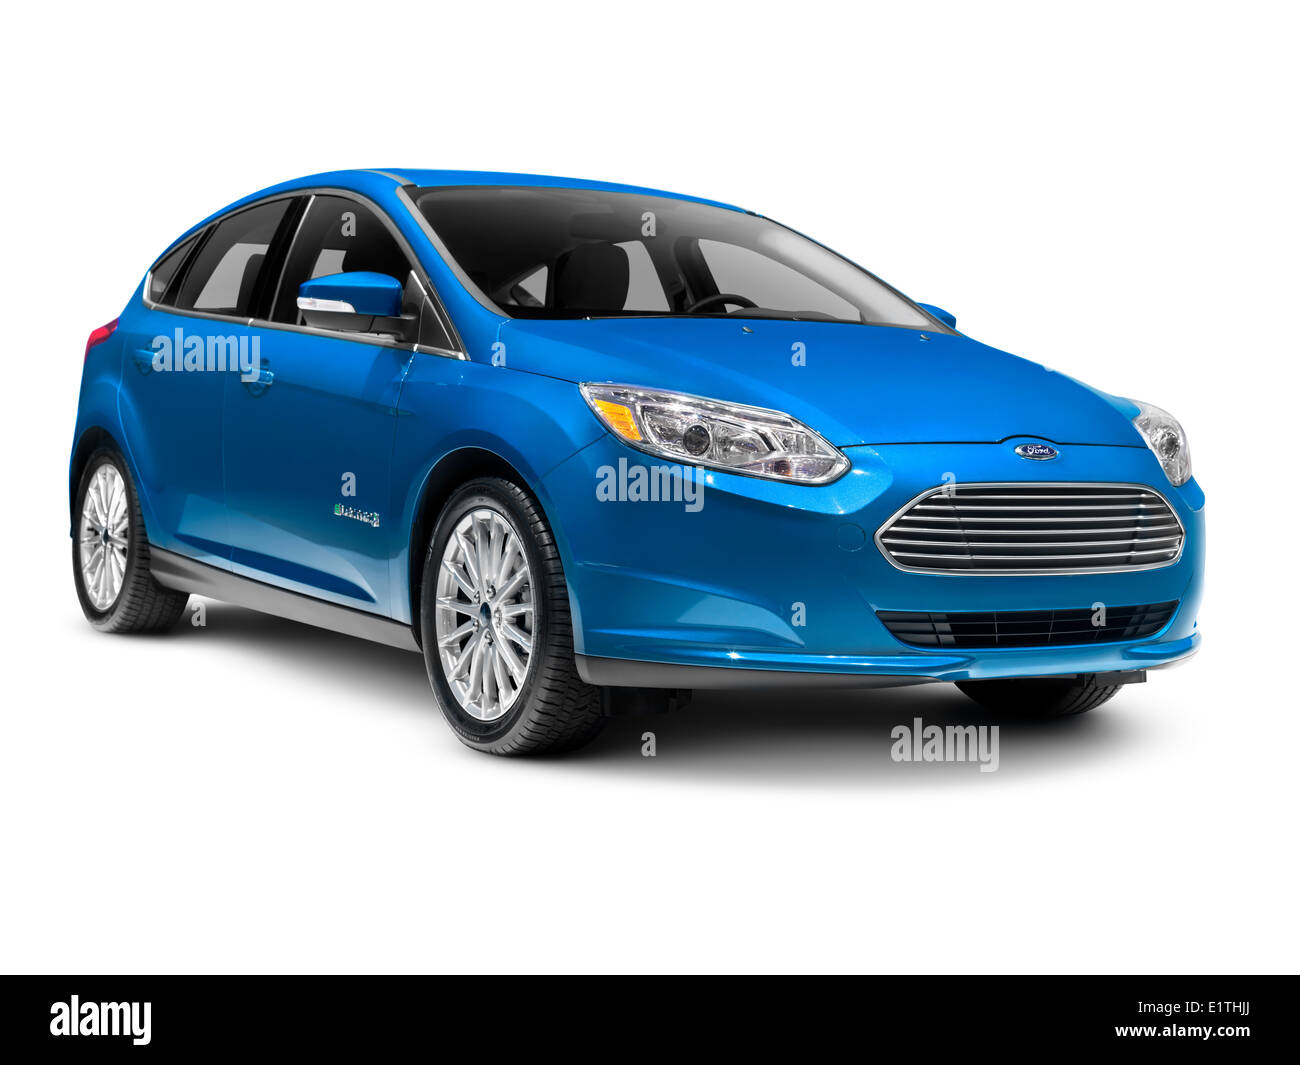 Ford focus electric car isolated on white background stock image